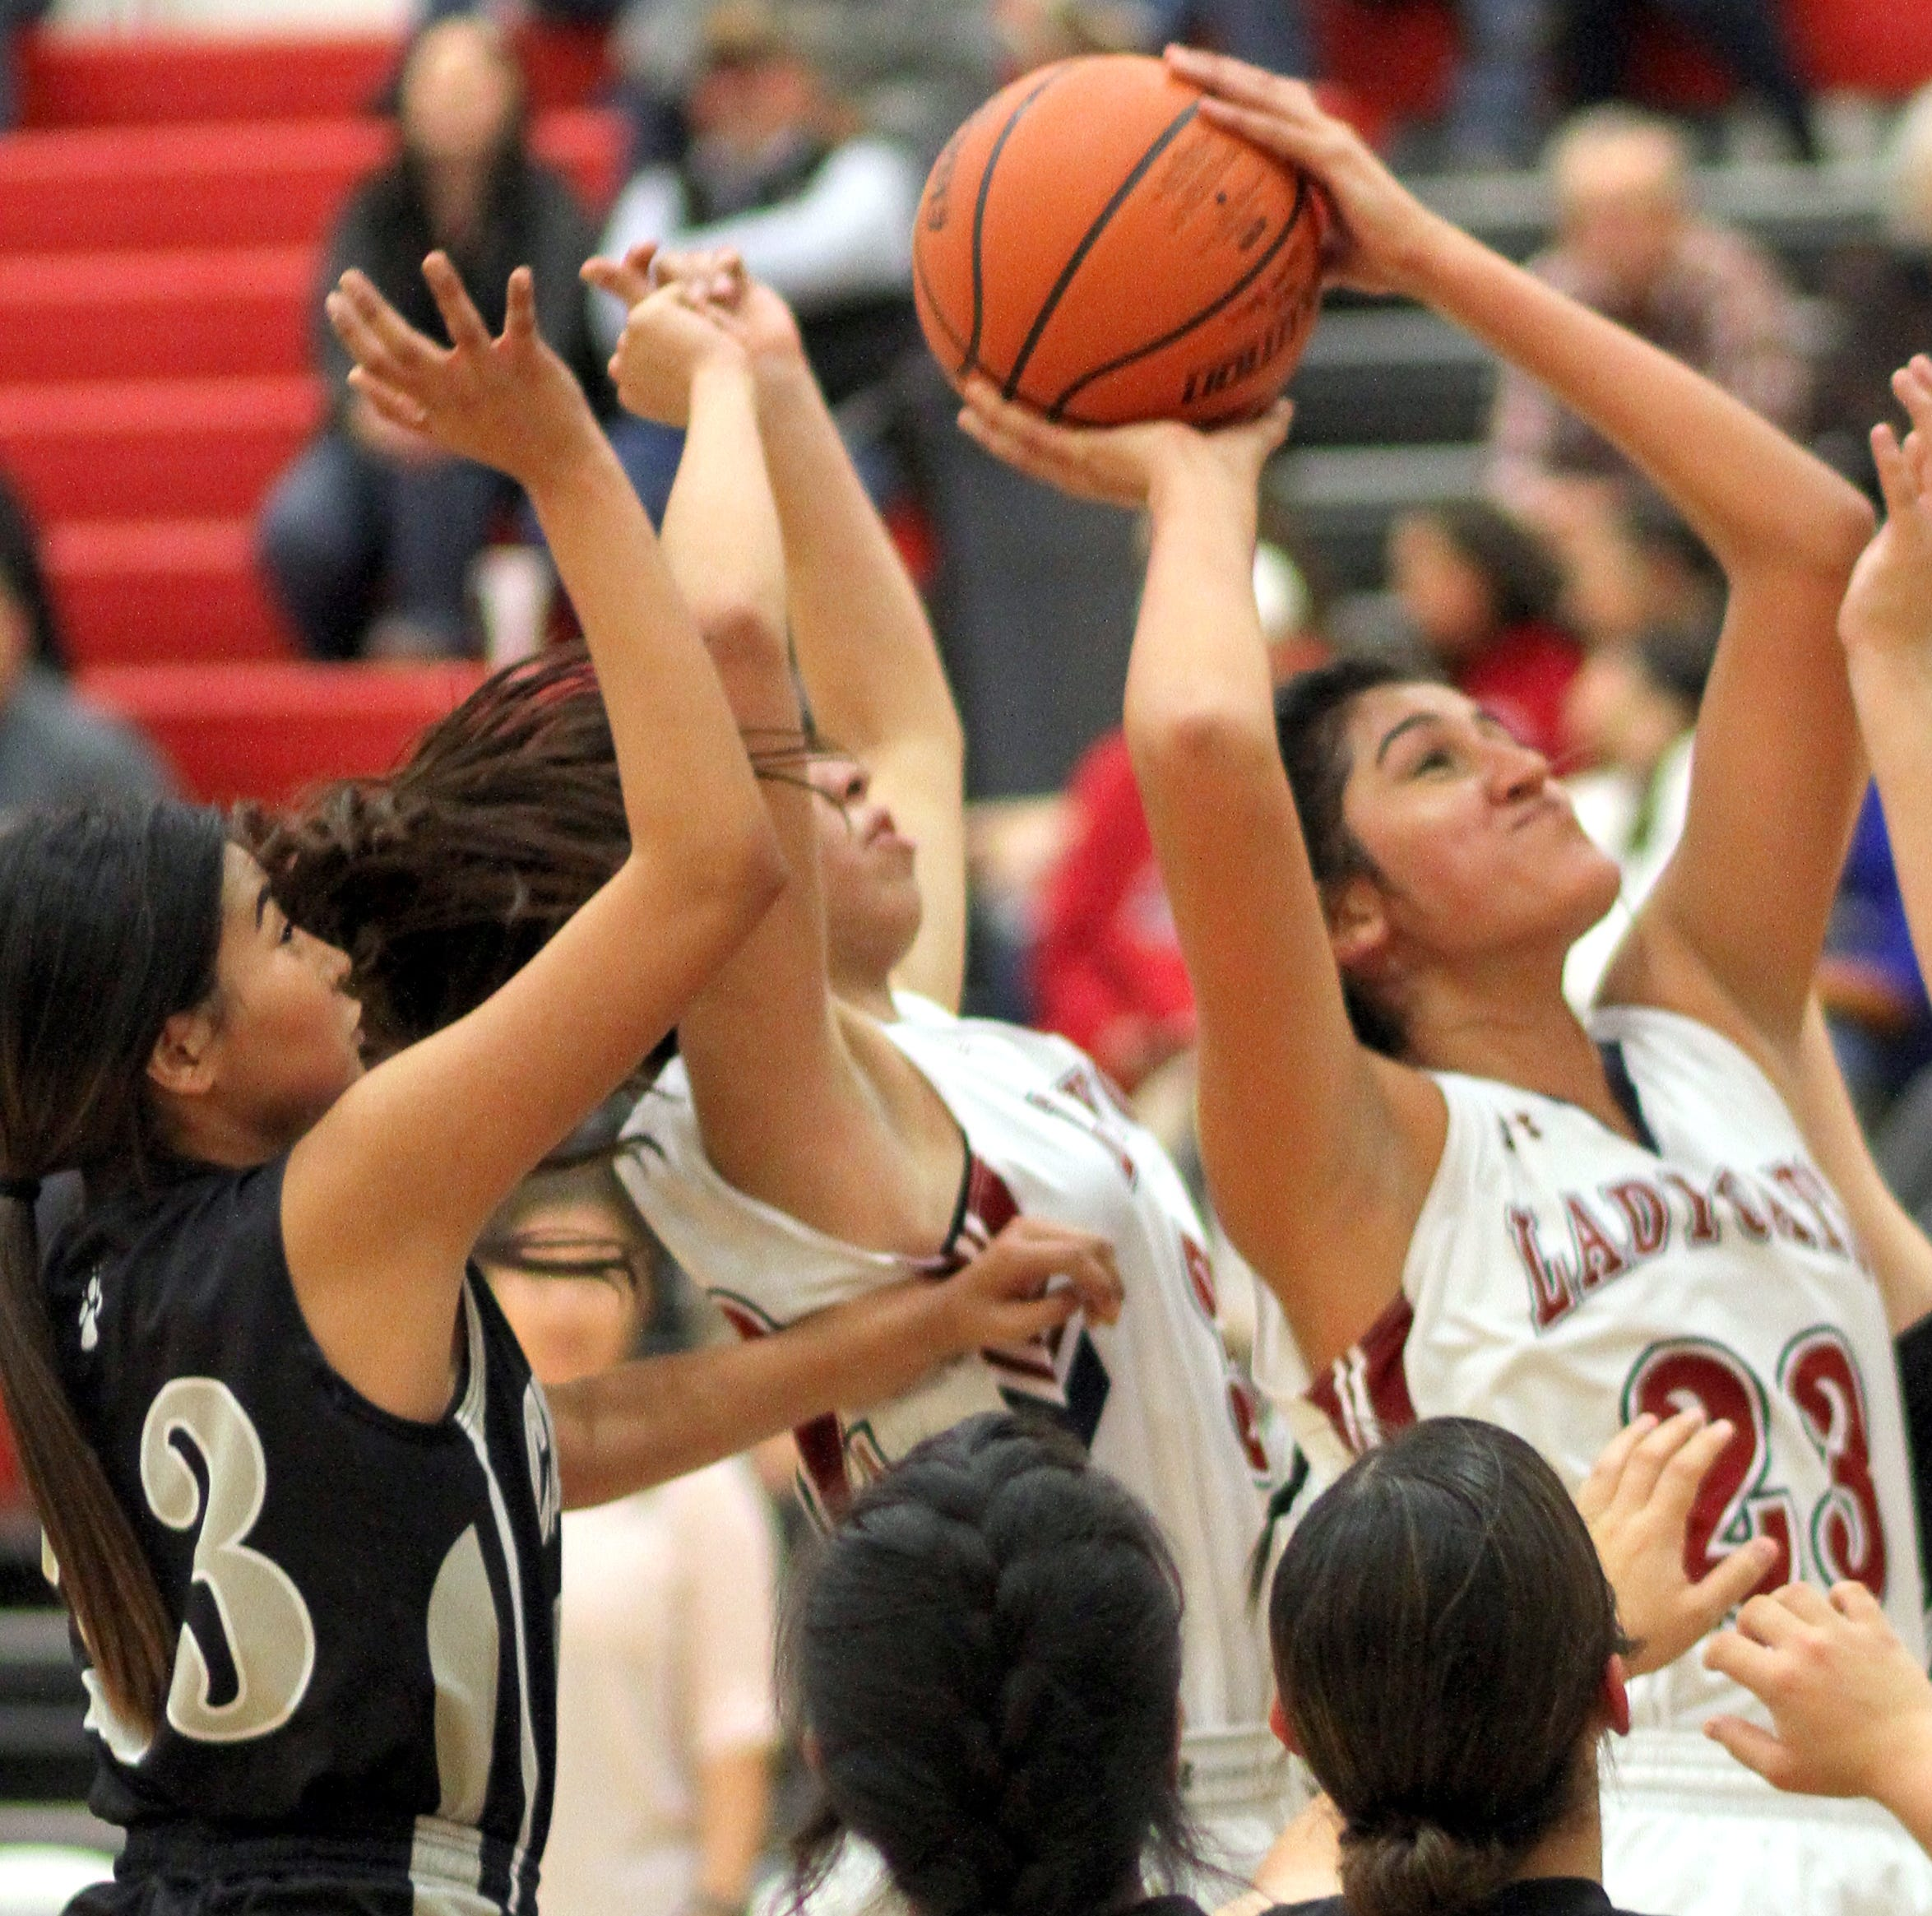 Deming High basketball teams close out tournament play at Artesia, NM